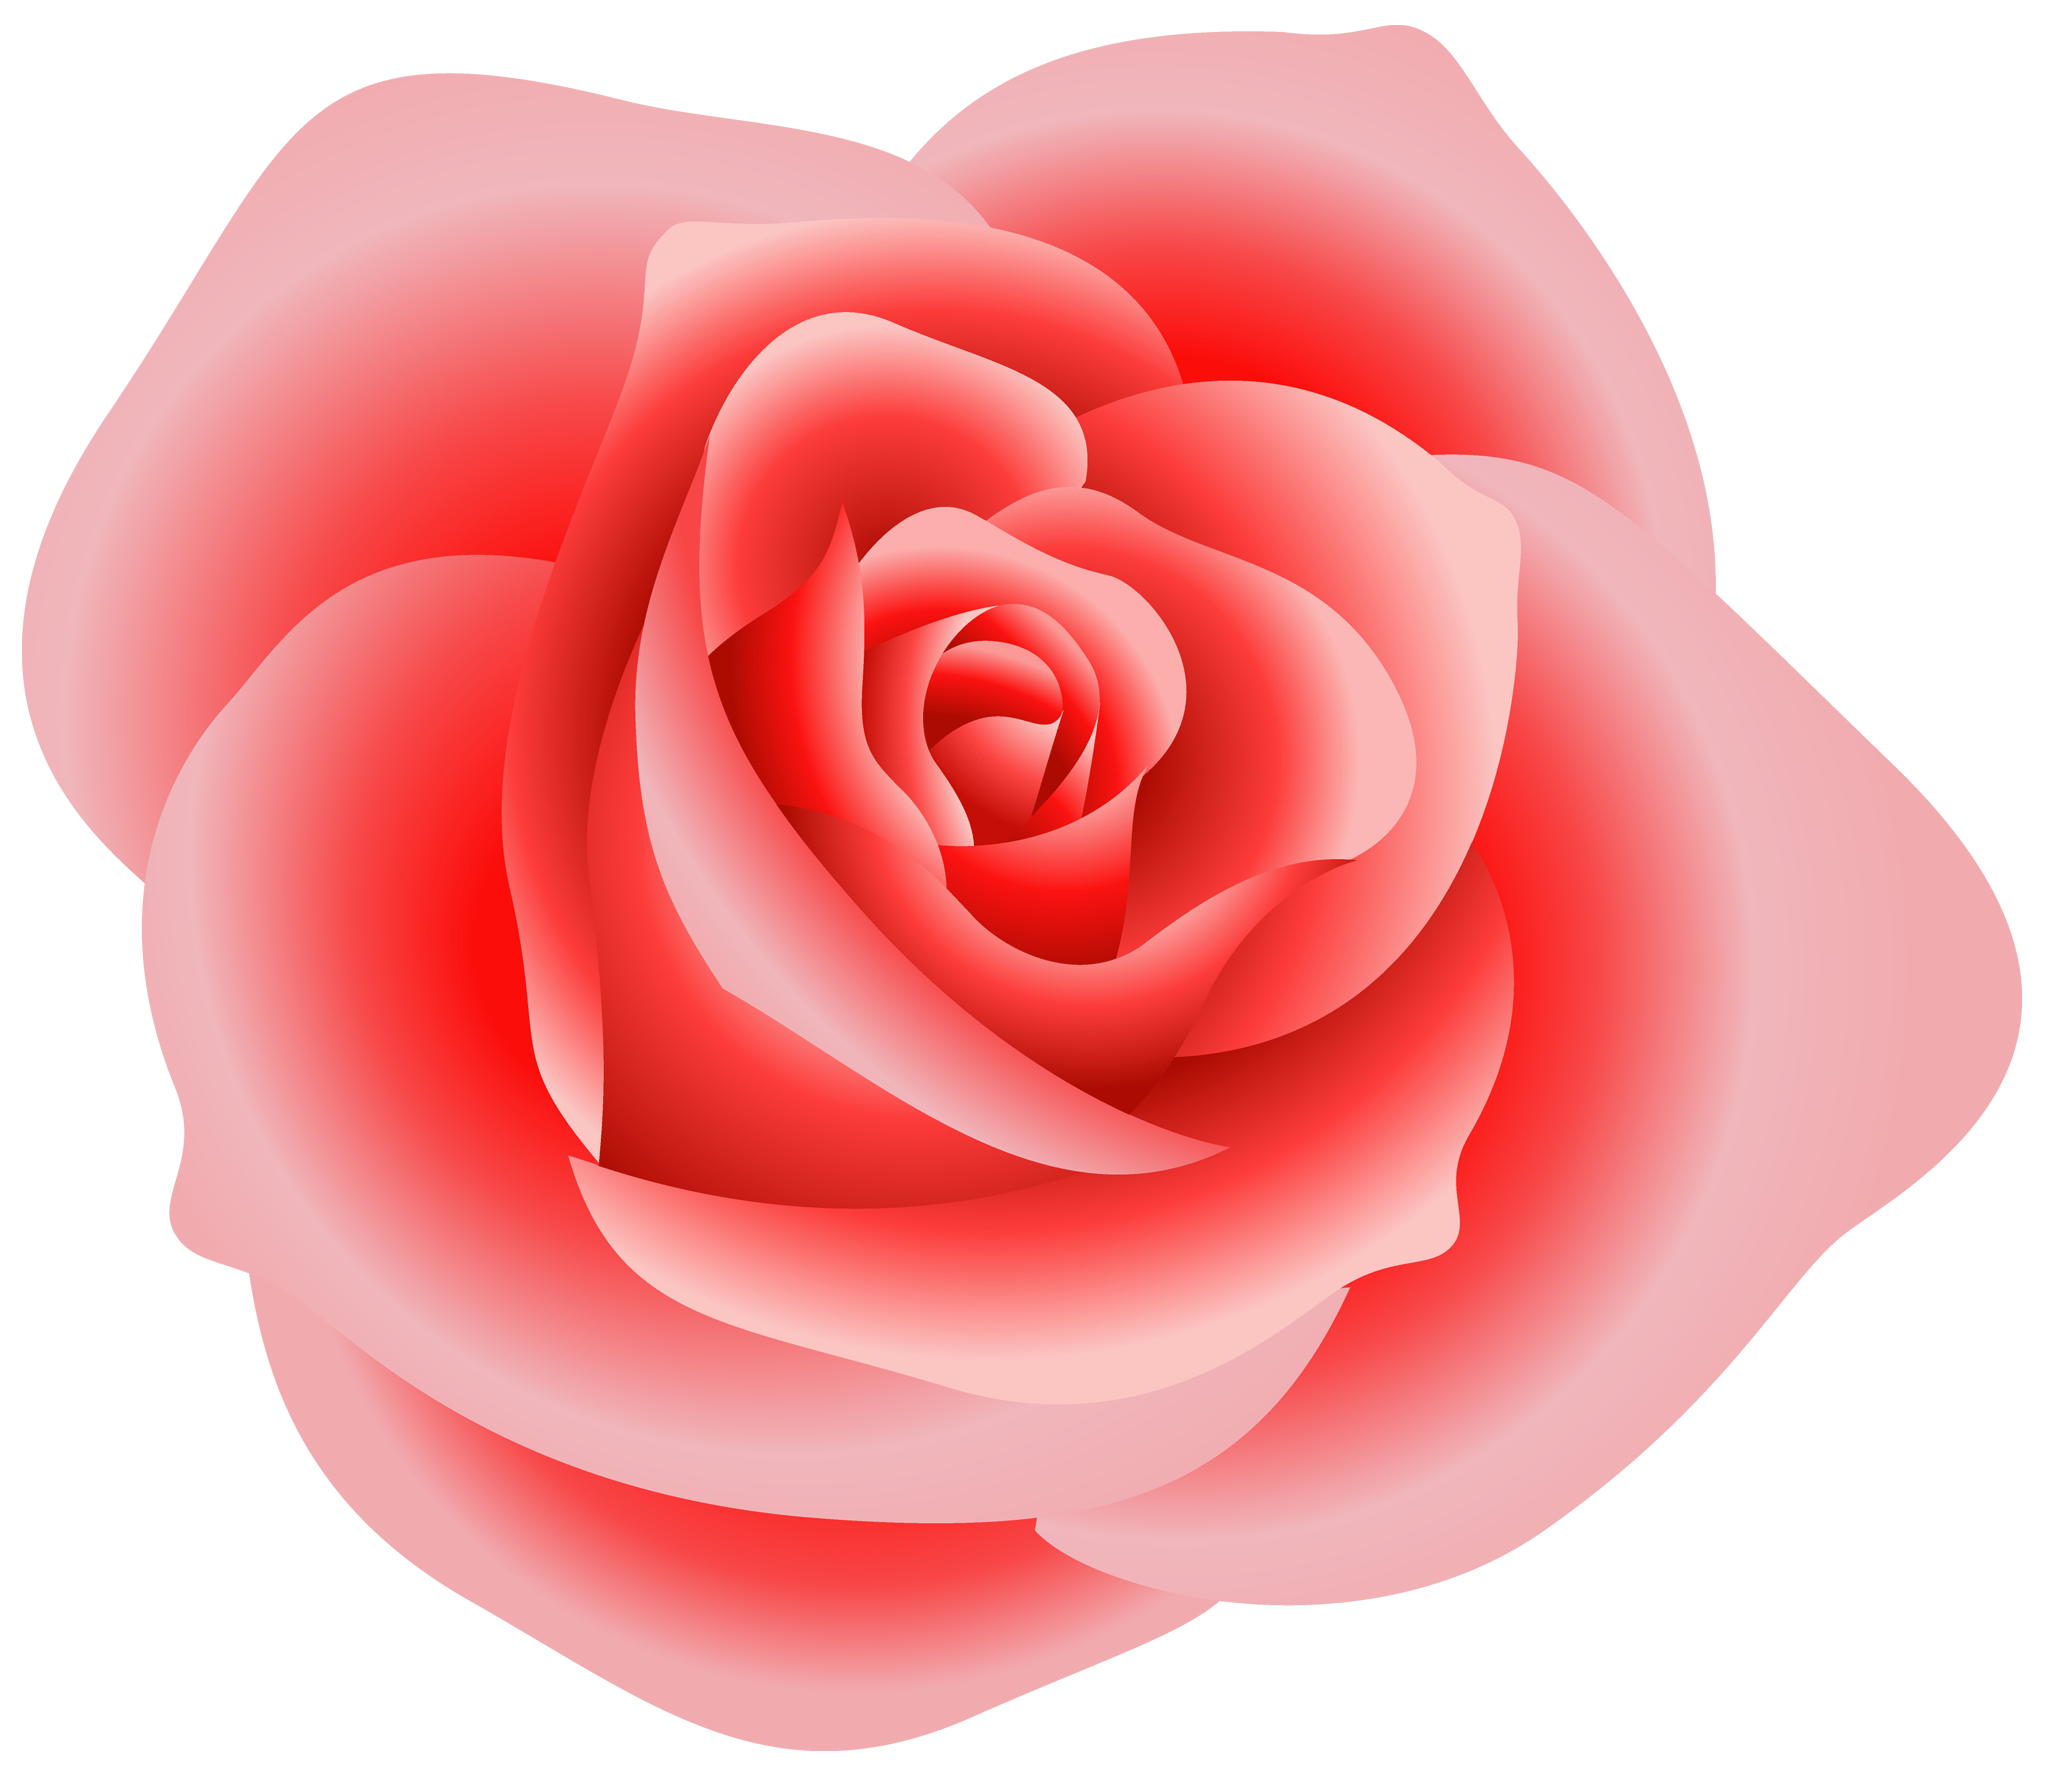 Simple Rose Clipart Free Clipart Image 2-Simple rose clipart free clipart image 2-16